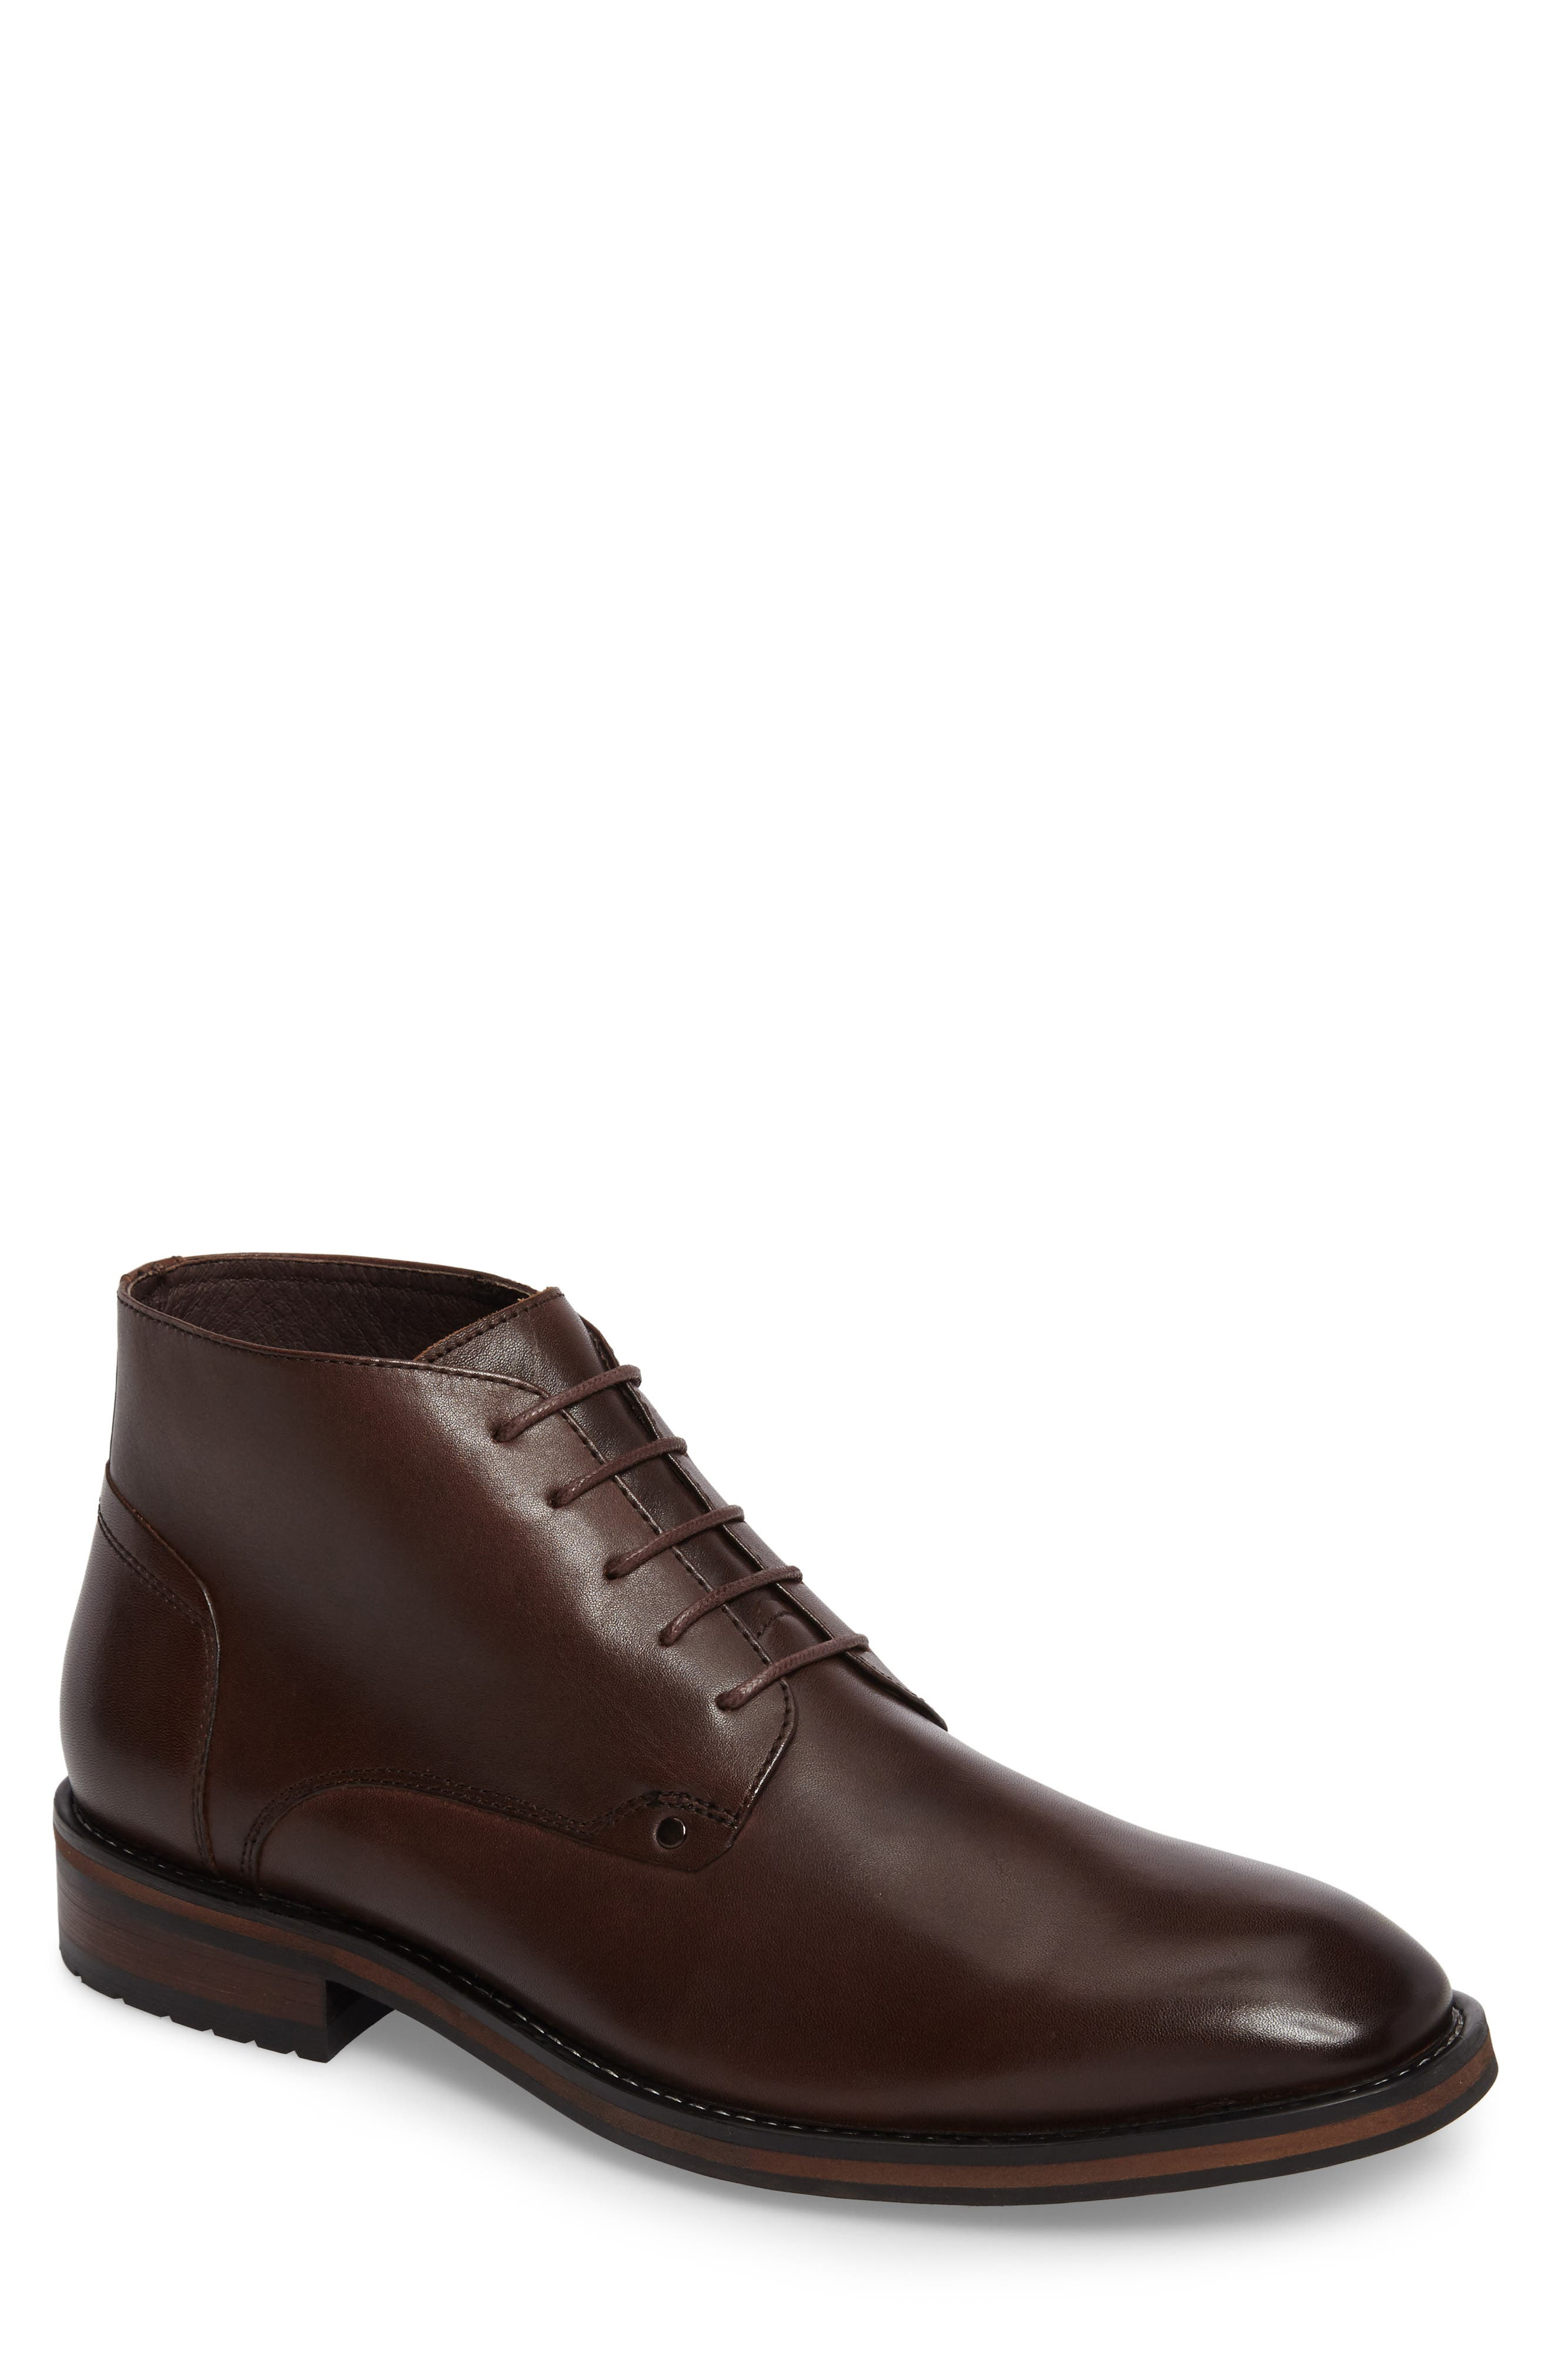 Malta Low Boot,                         Main,                         color, Brown Leather